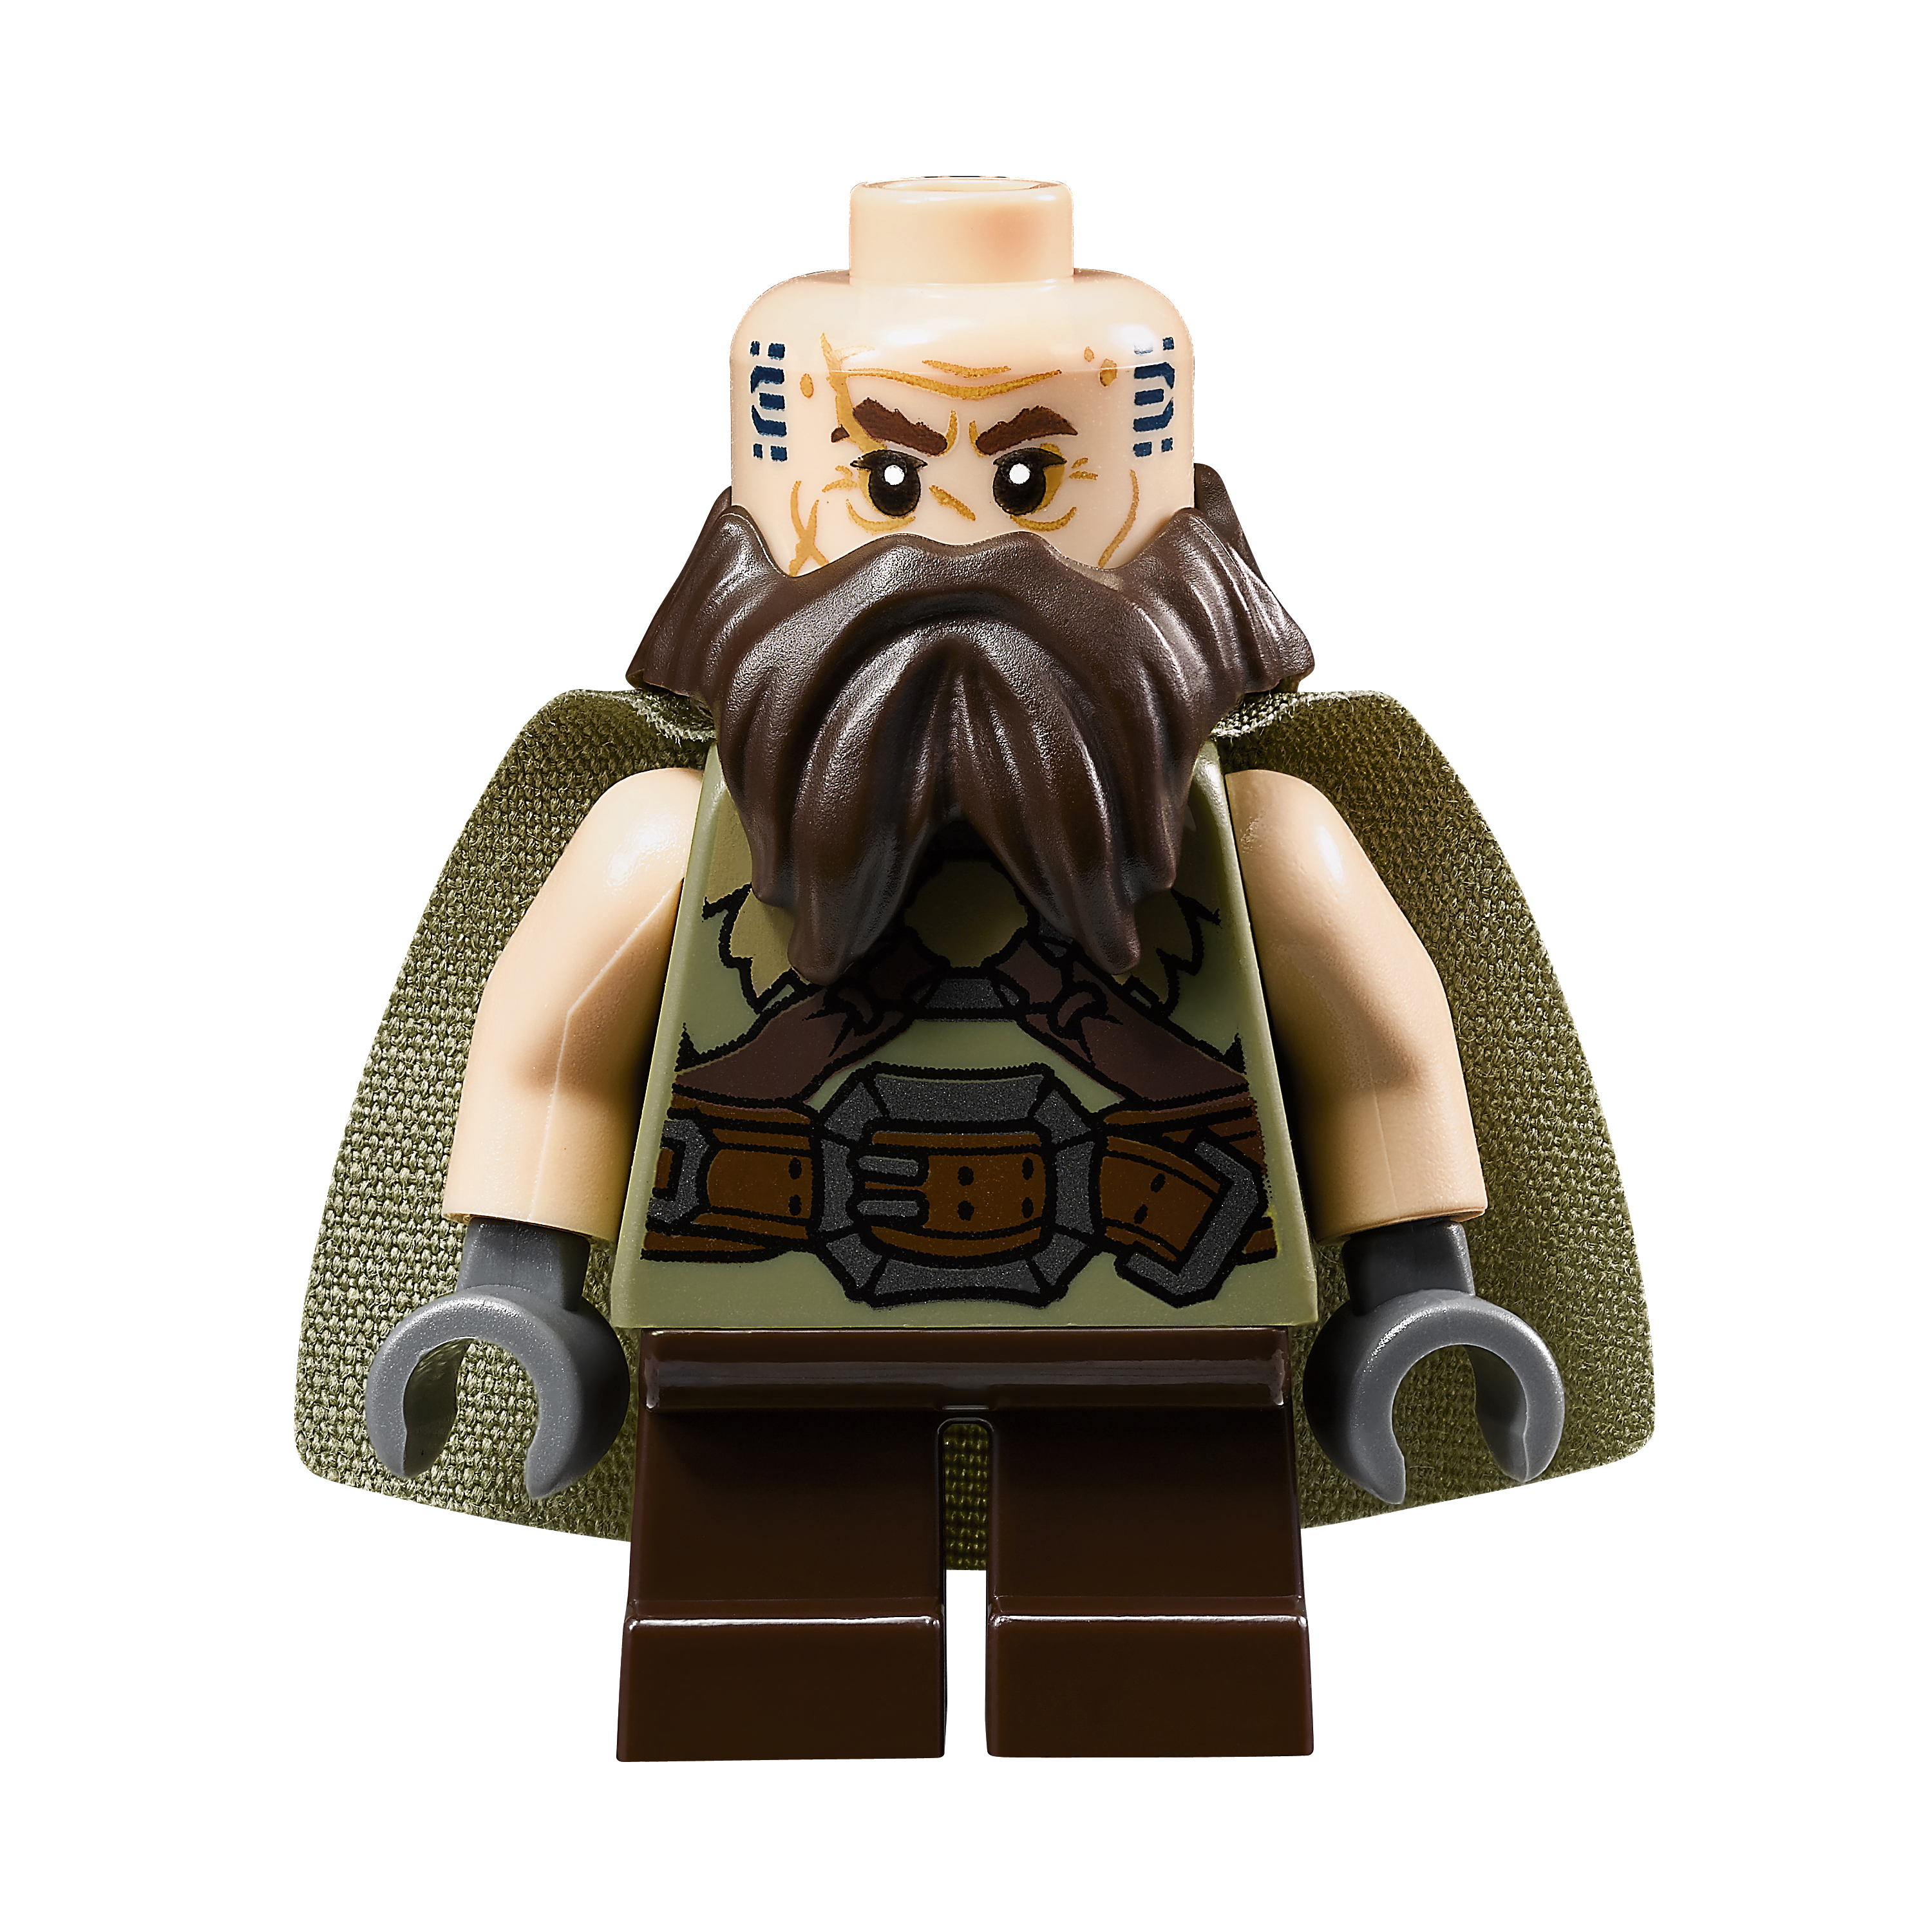 q_79003_dwalin_the_dwarf.jpg